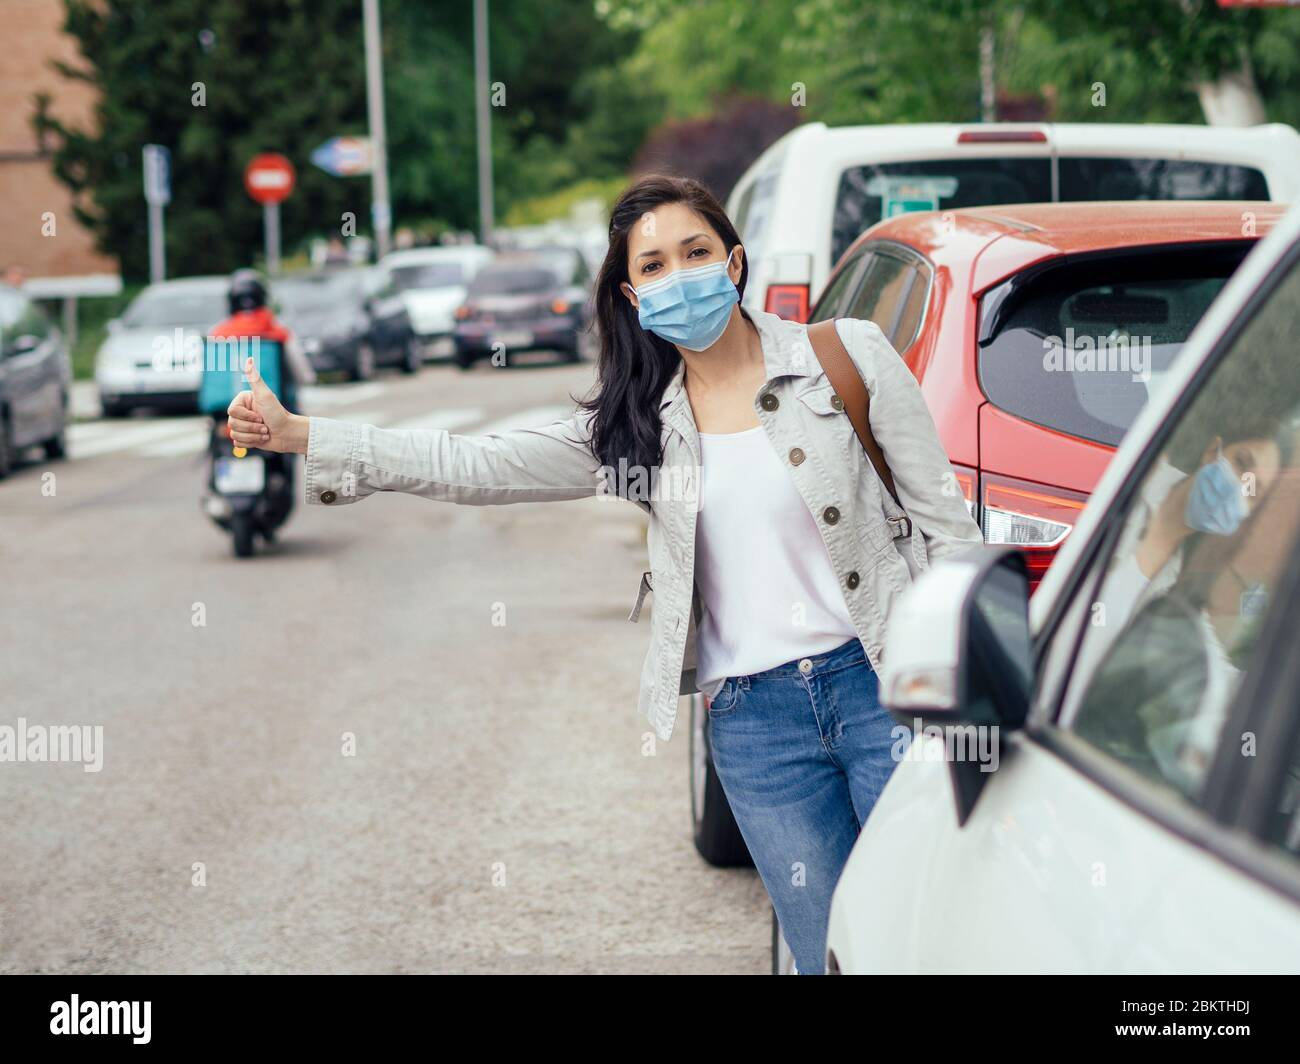 Woman hitchhiking. She is wearing a protective mask for the prevention of a virus. Coronavirus concept. Stock Photo